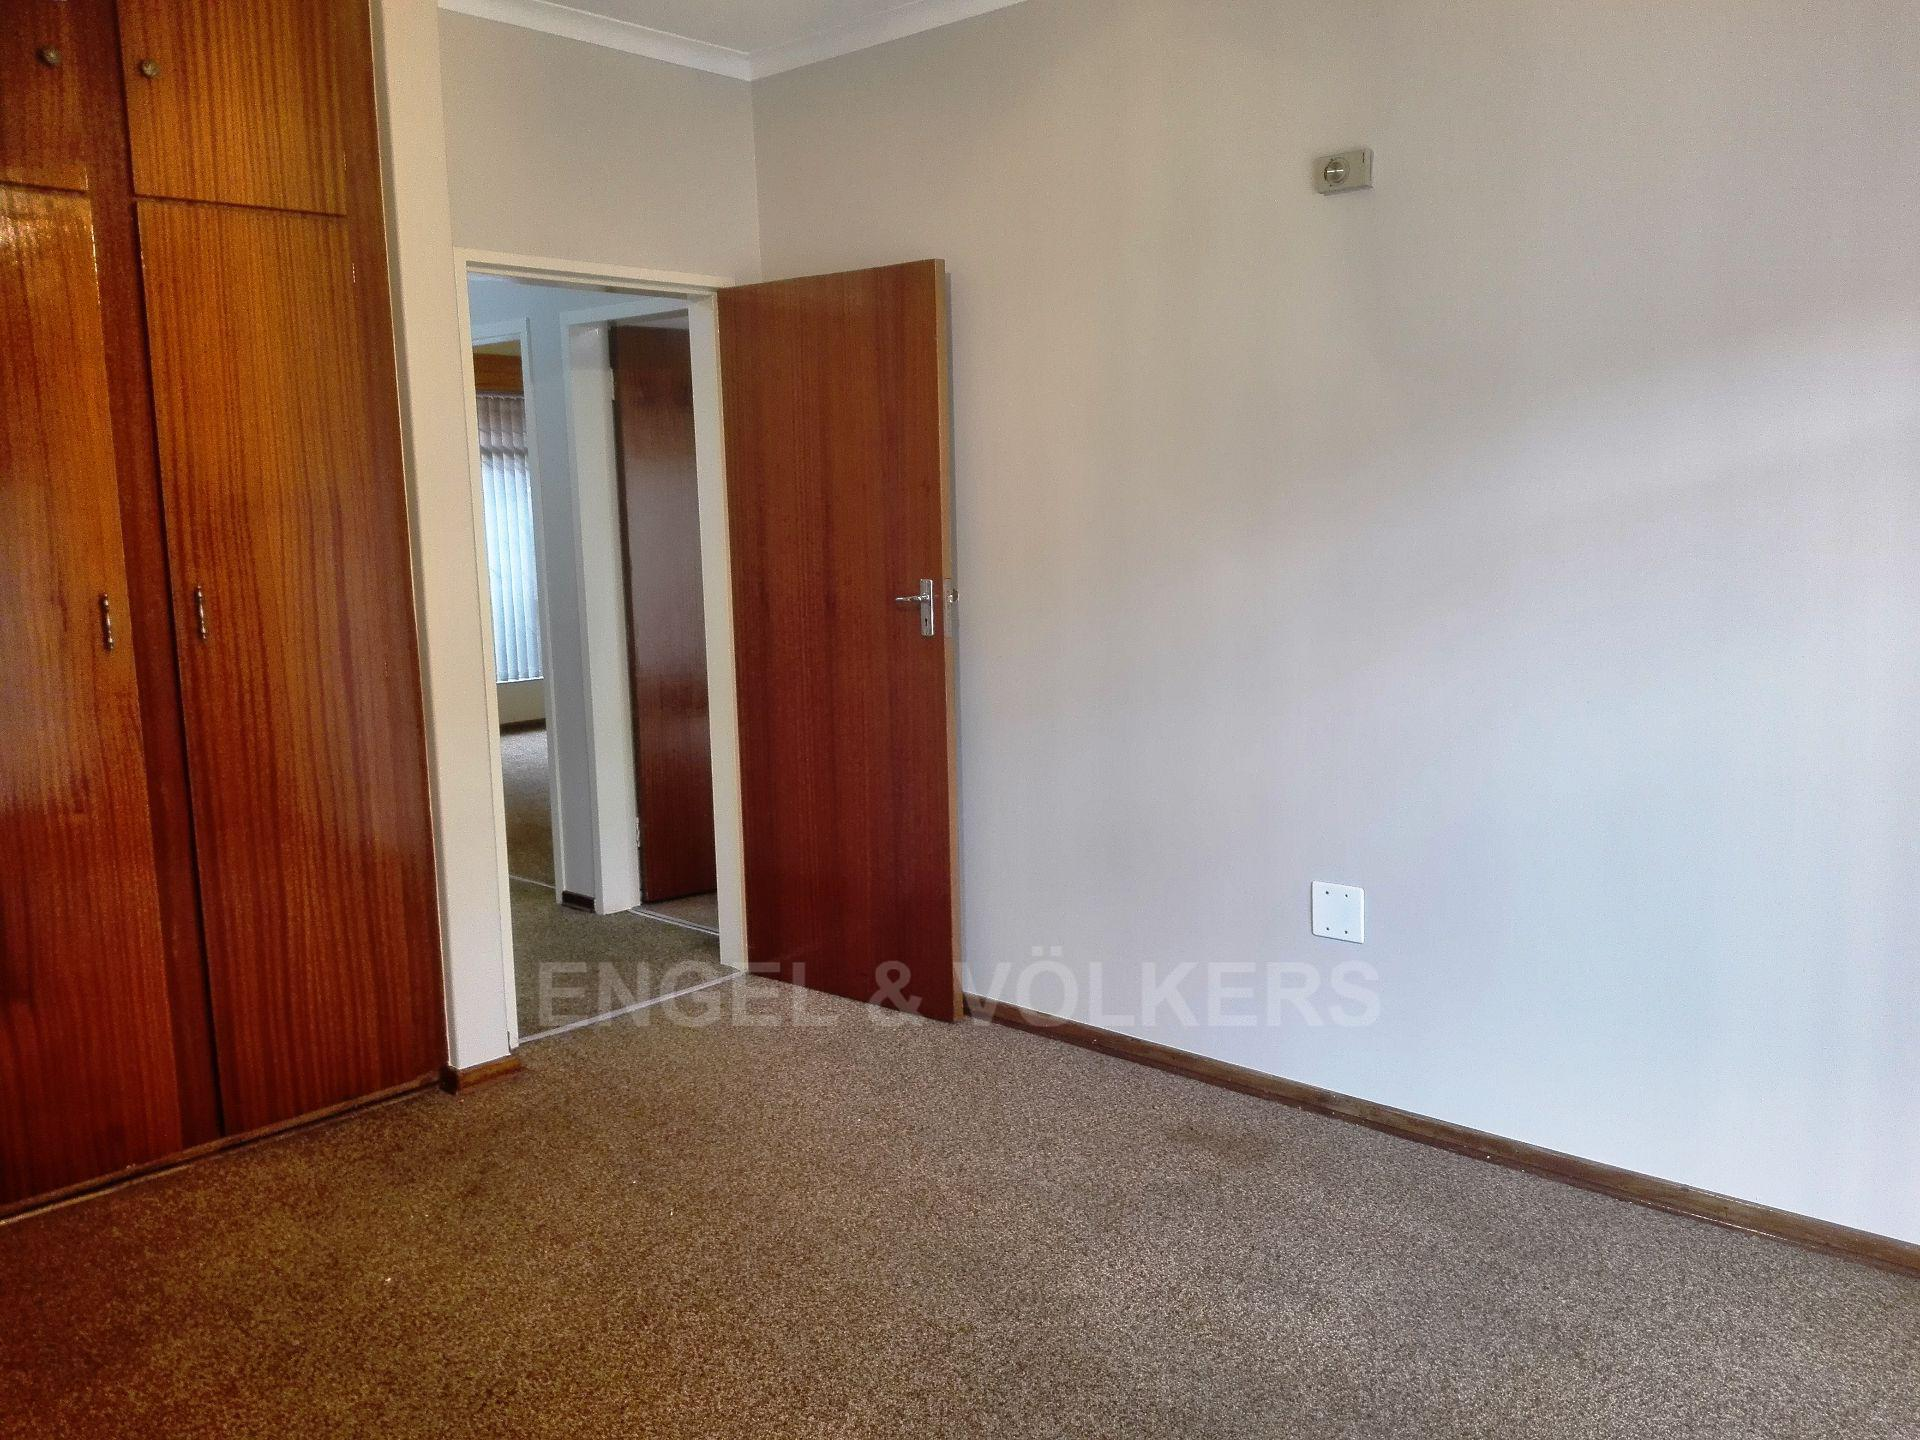 Potchefstroom Central property for sale. Ref No: 13498695. Picture no 22